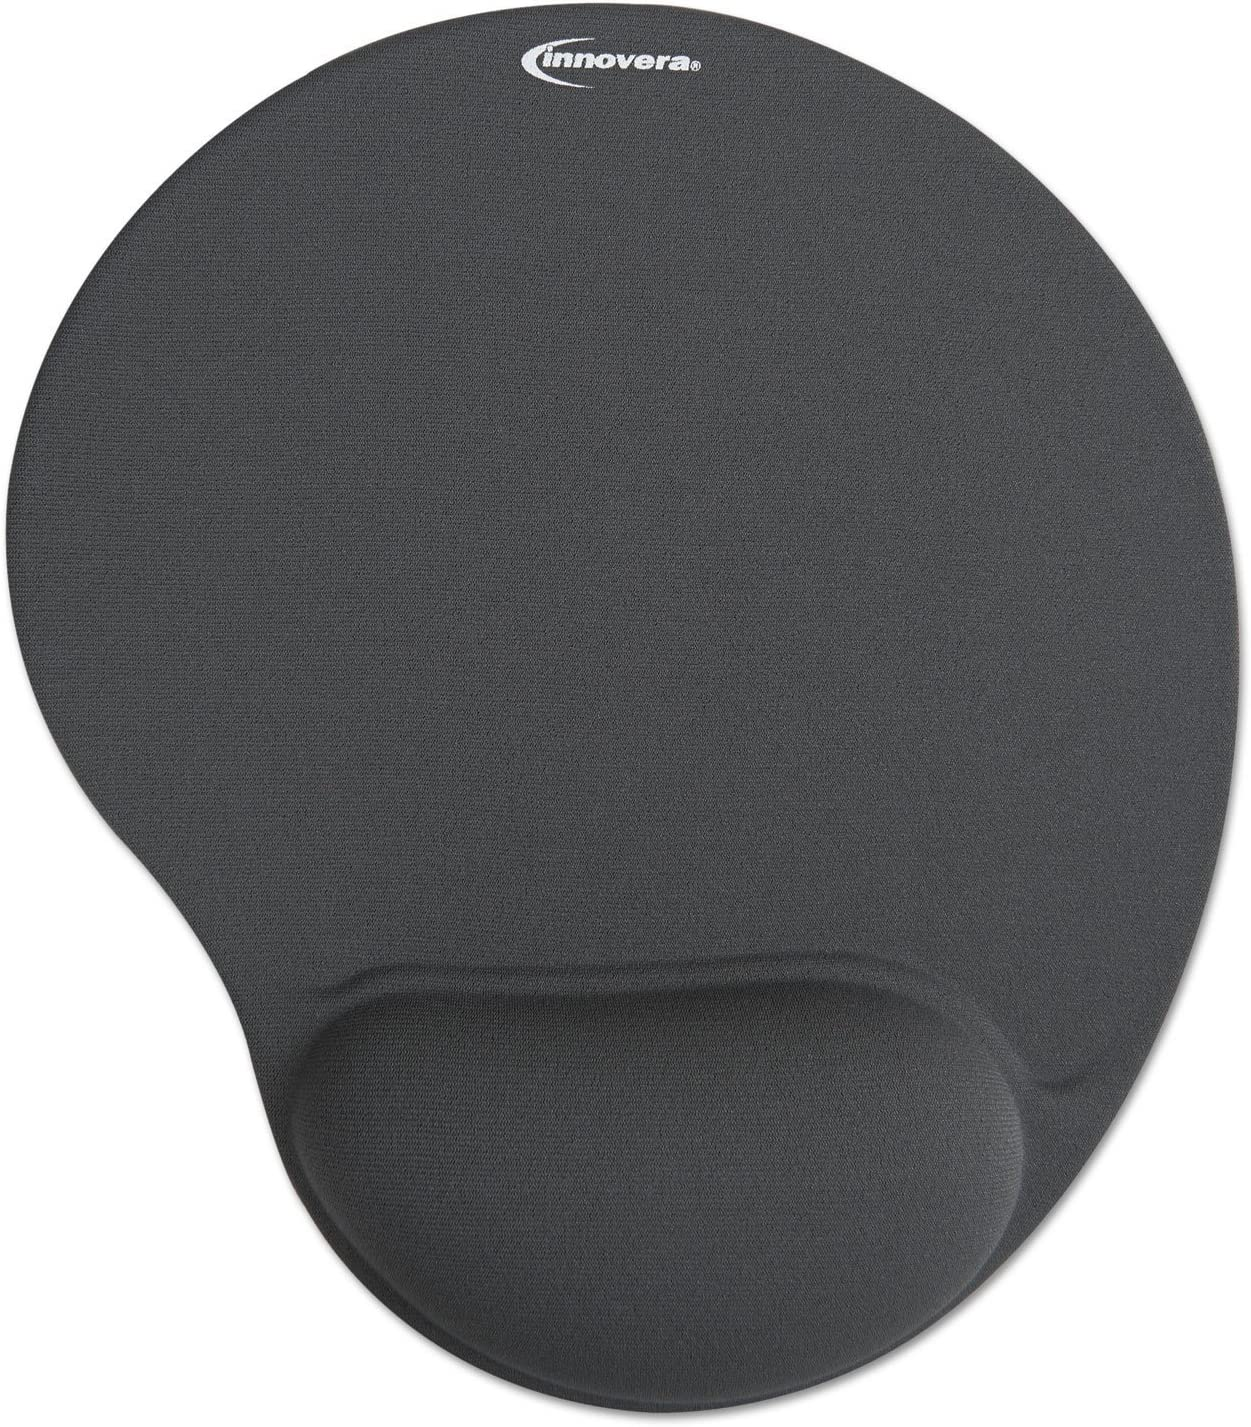 Free Shipping 50449 New Innovera Mouse Pad with Gel Wrist Pad Gray